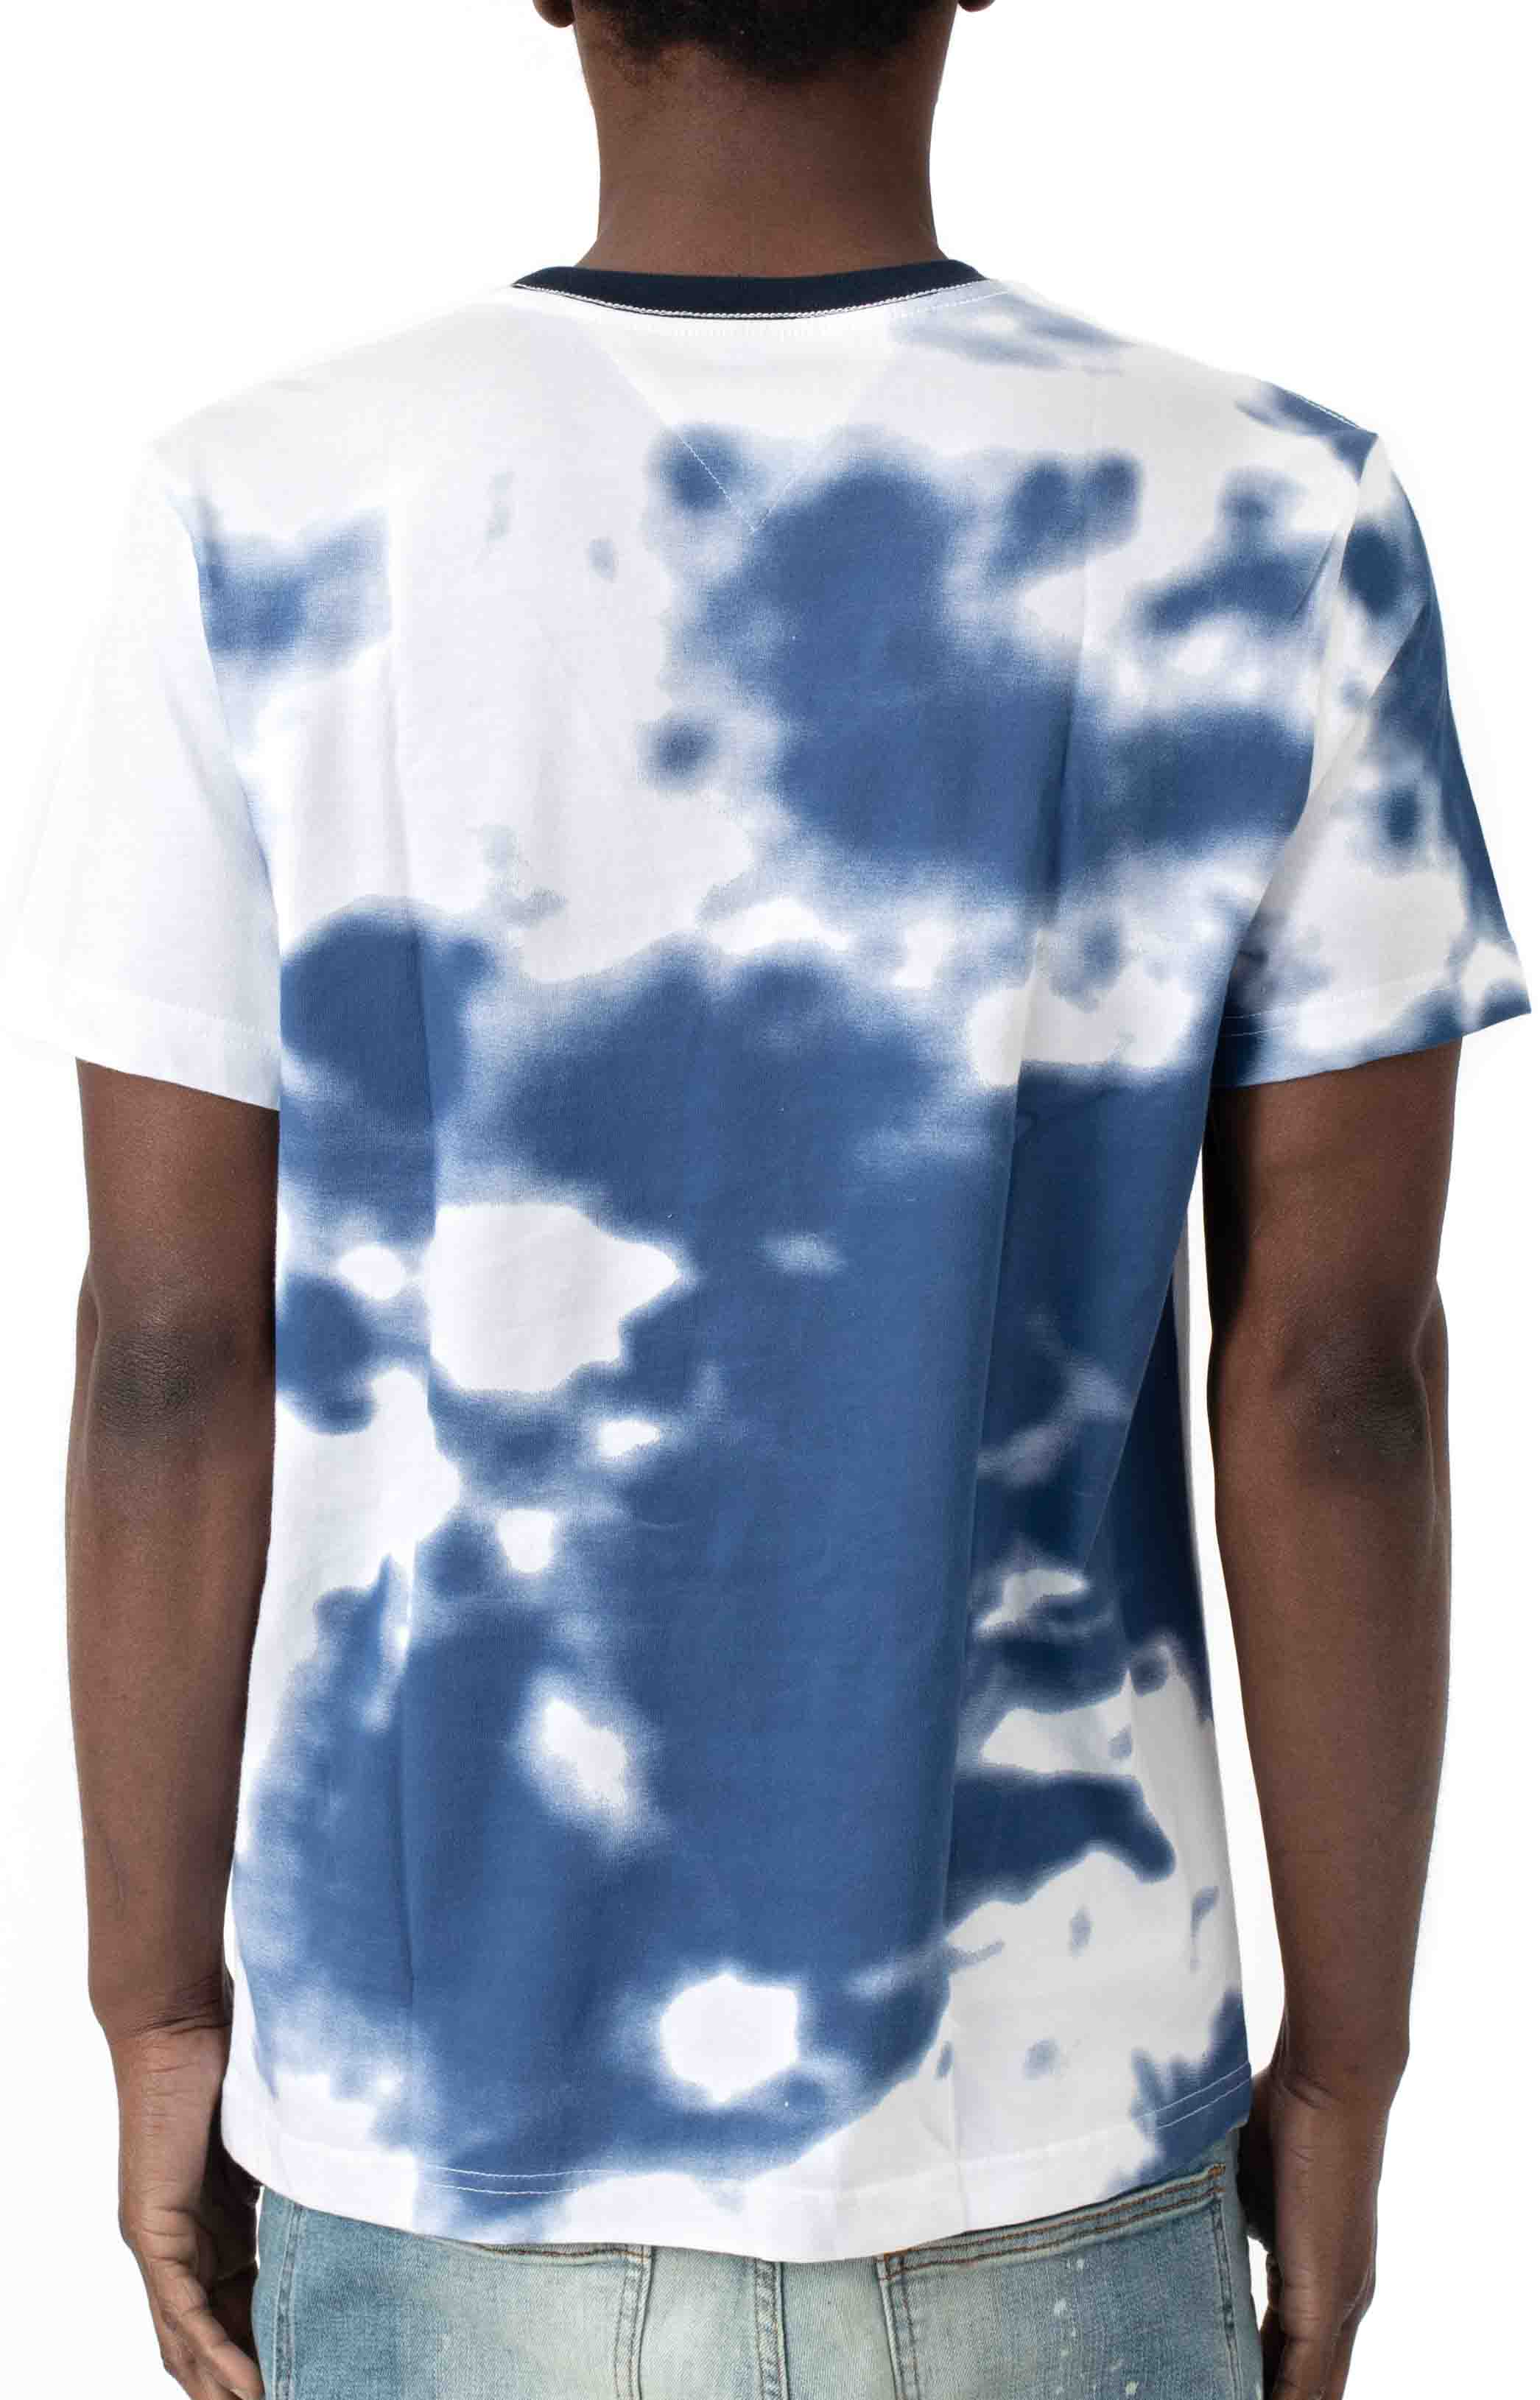 Tino Tie-Dye T-Shirt - Bright White  3